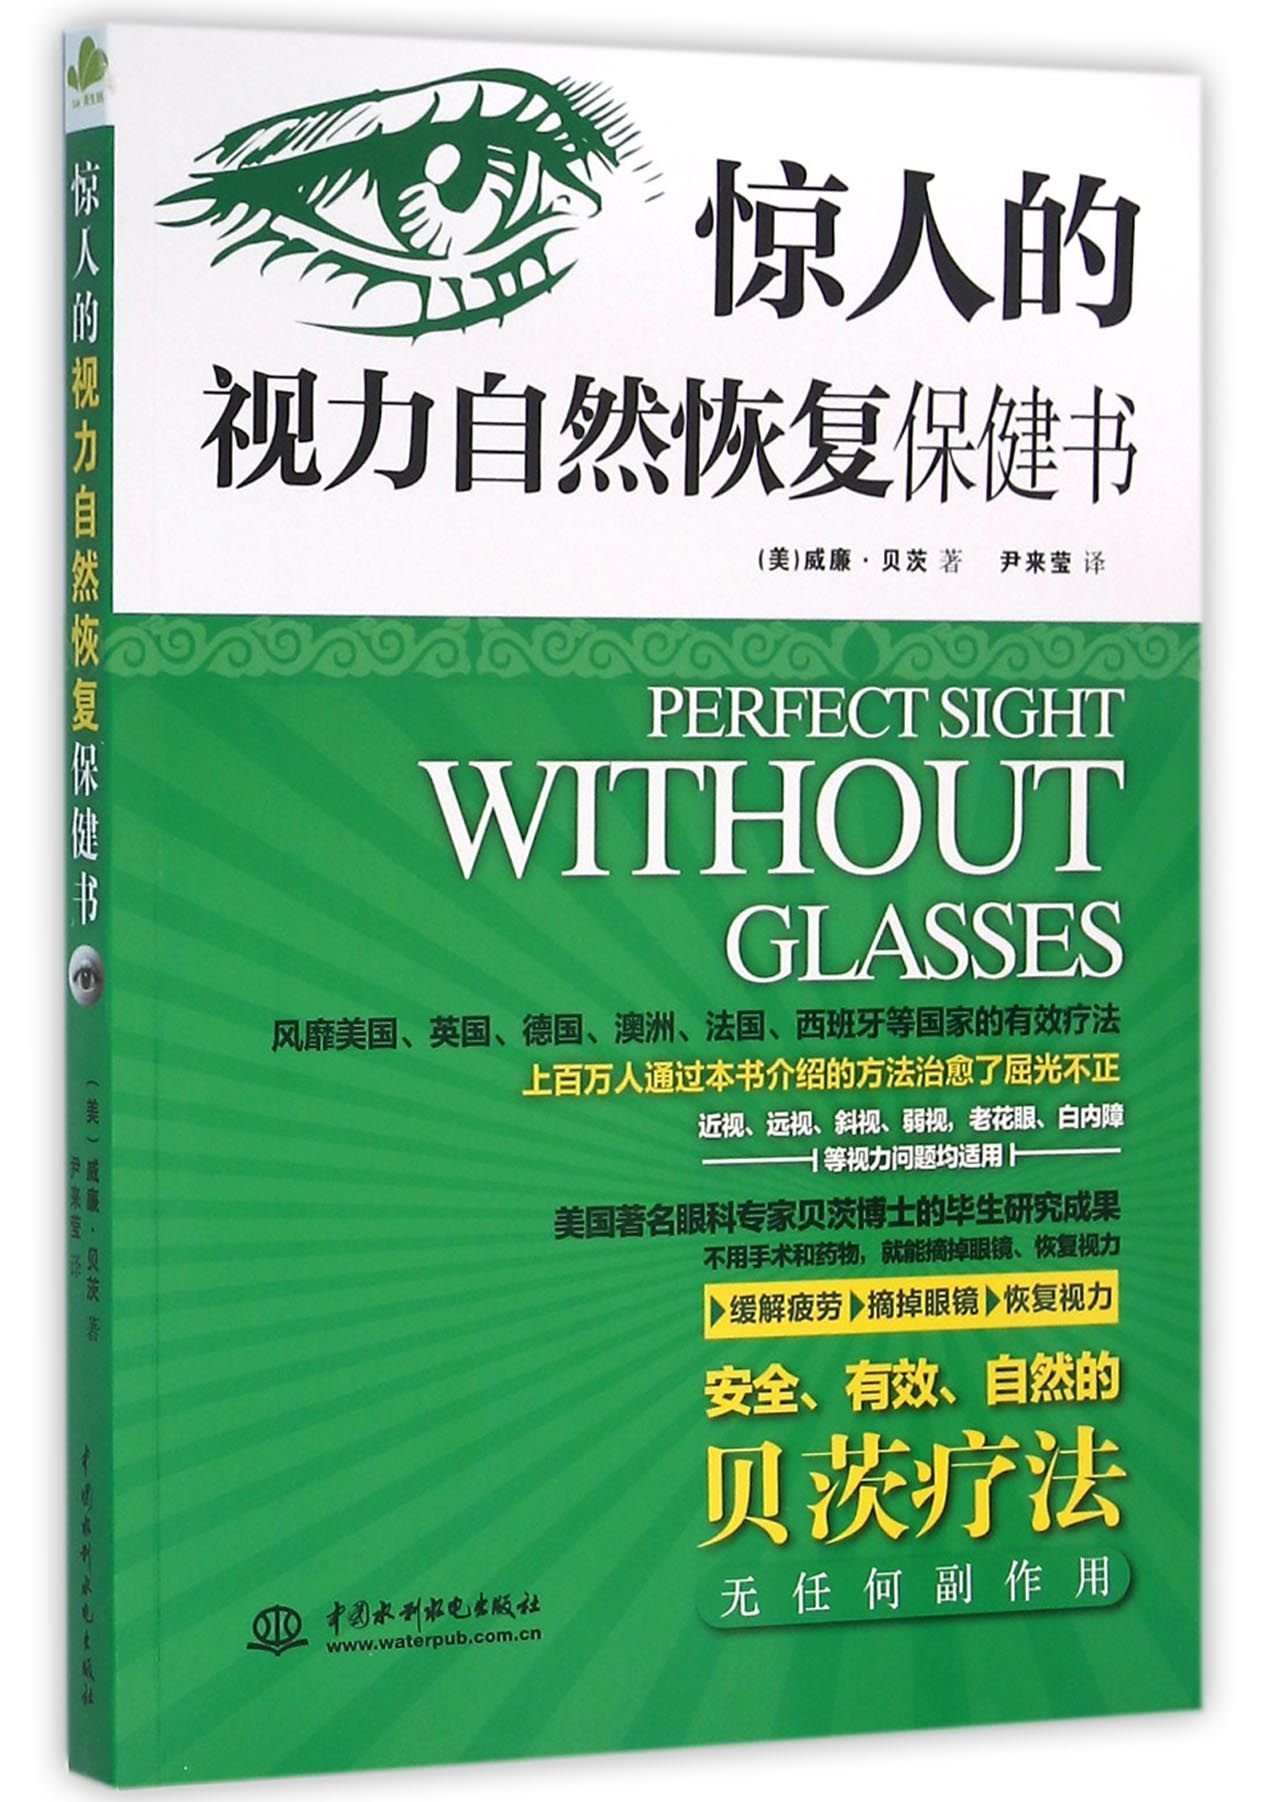 Read Online Perfect Sight Without Glasses (Chinese Edition) ebook